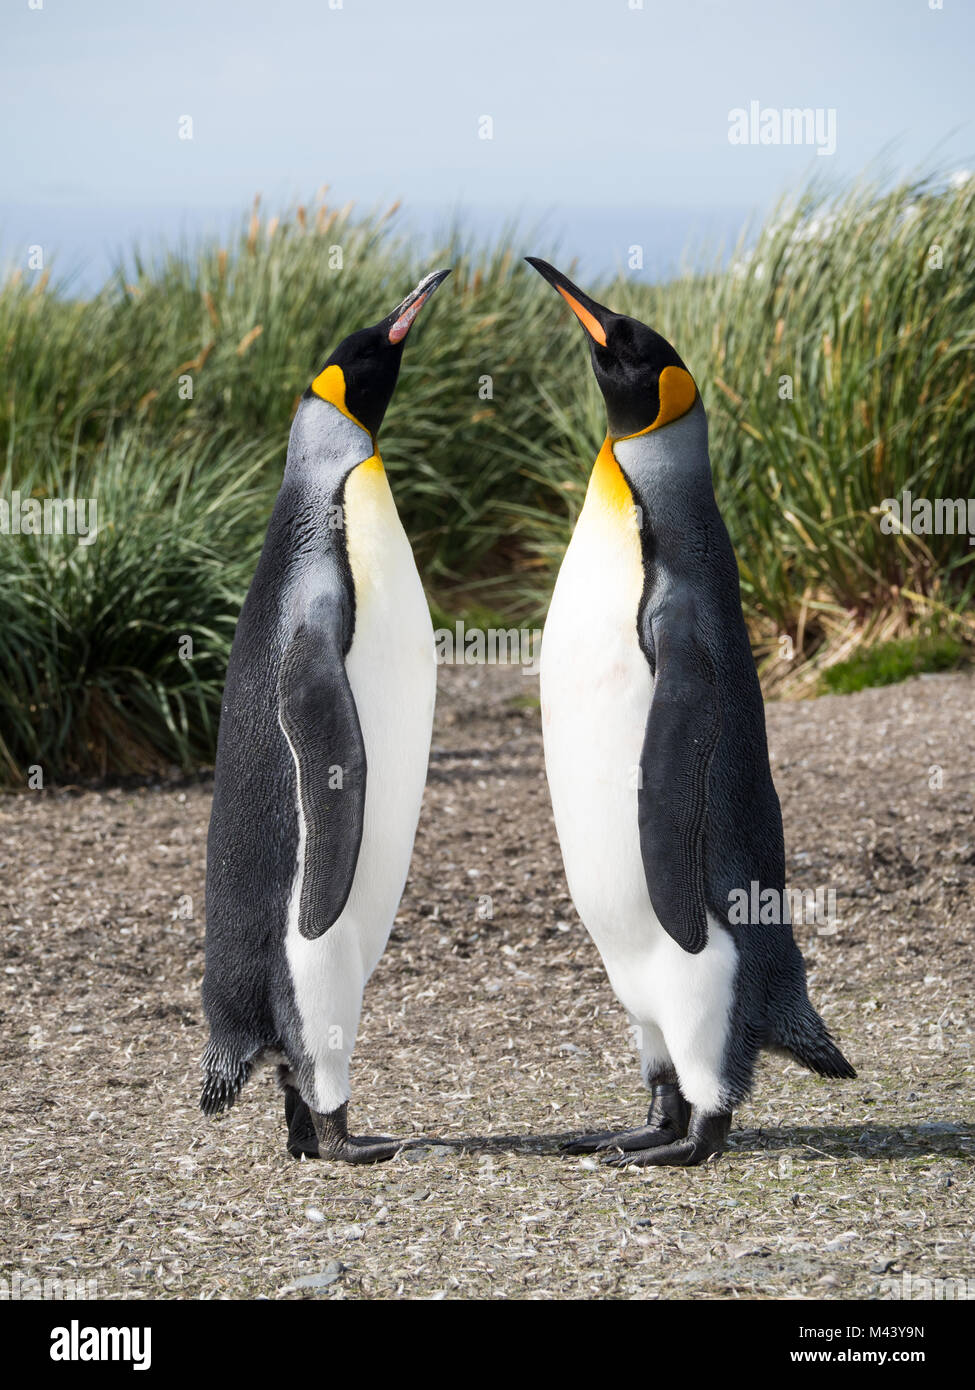 A pair of courting king penguins standing with beaks raised toward the sky. Tussac grass is in the background. Shallow Stock Photo